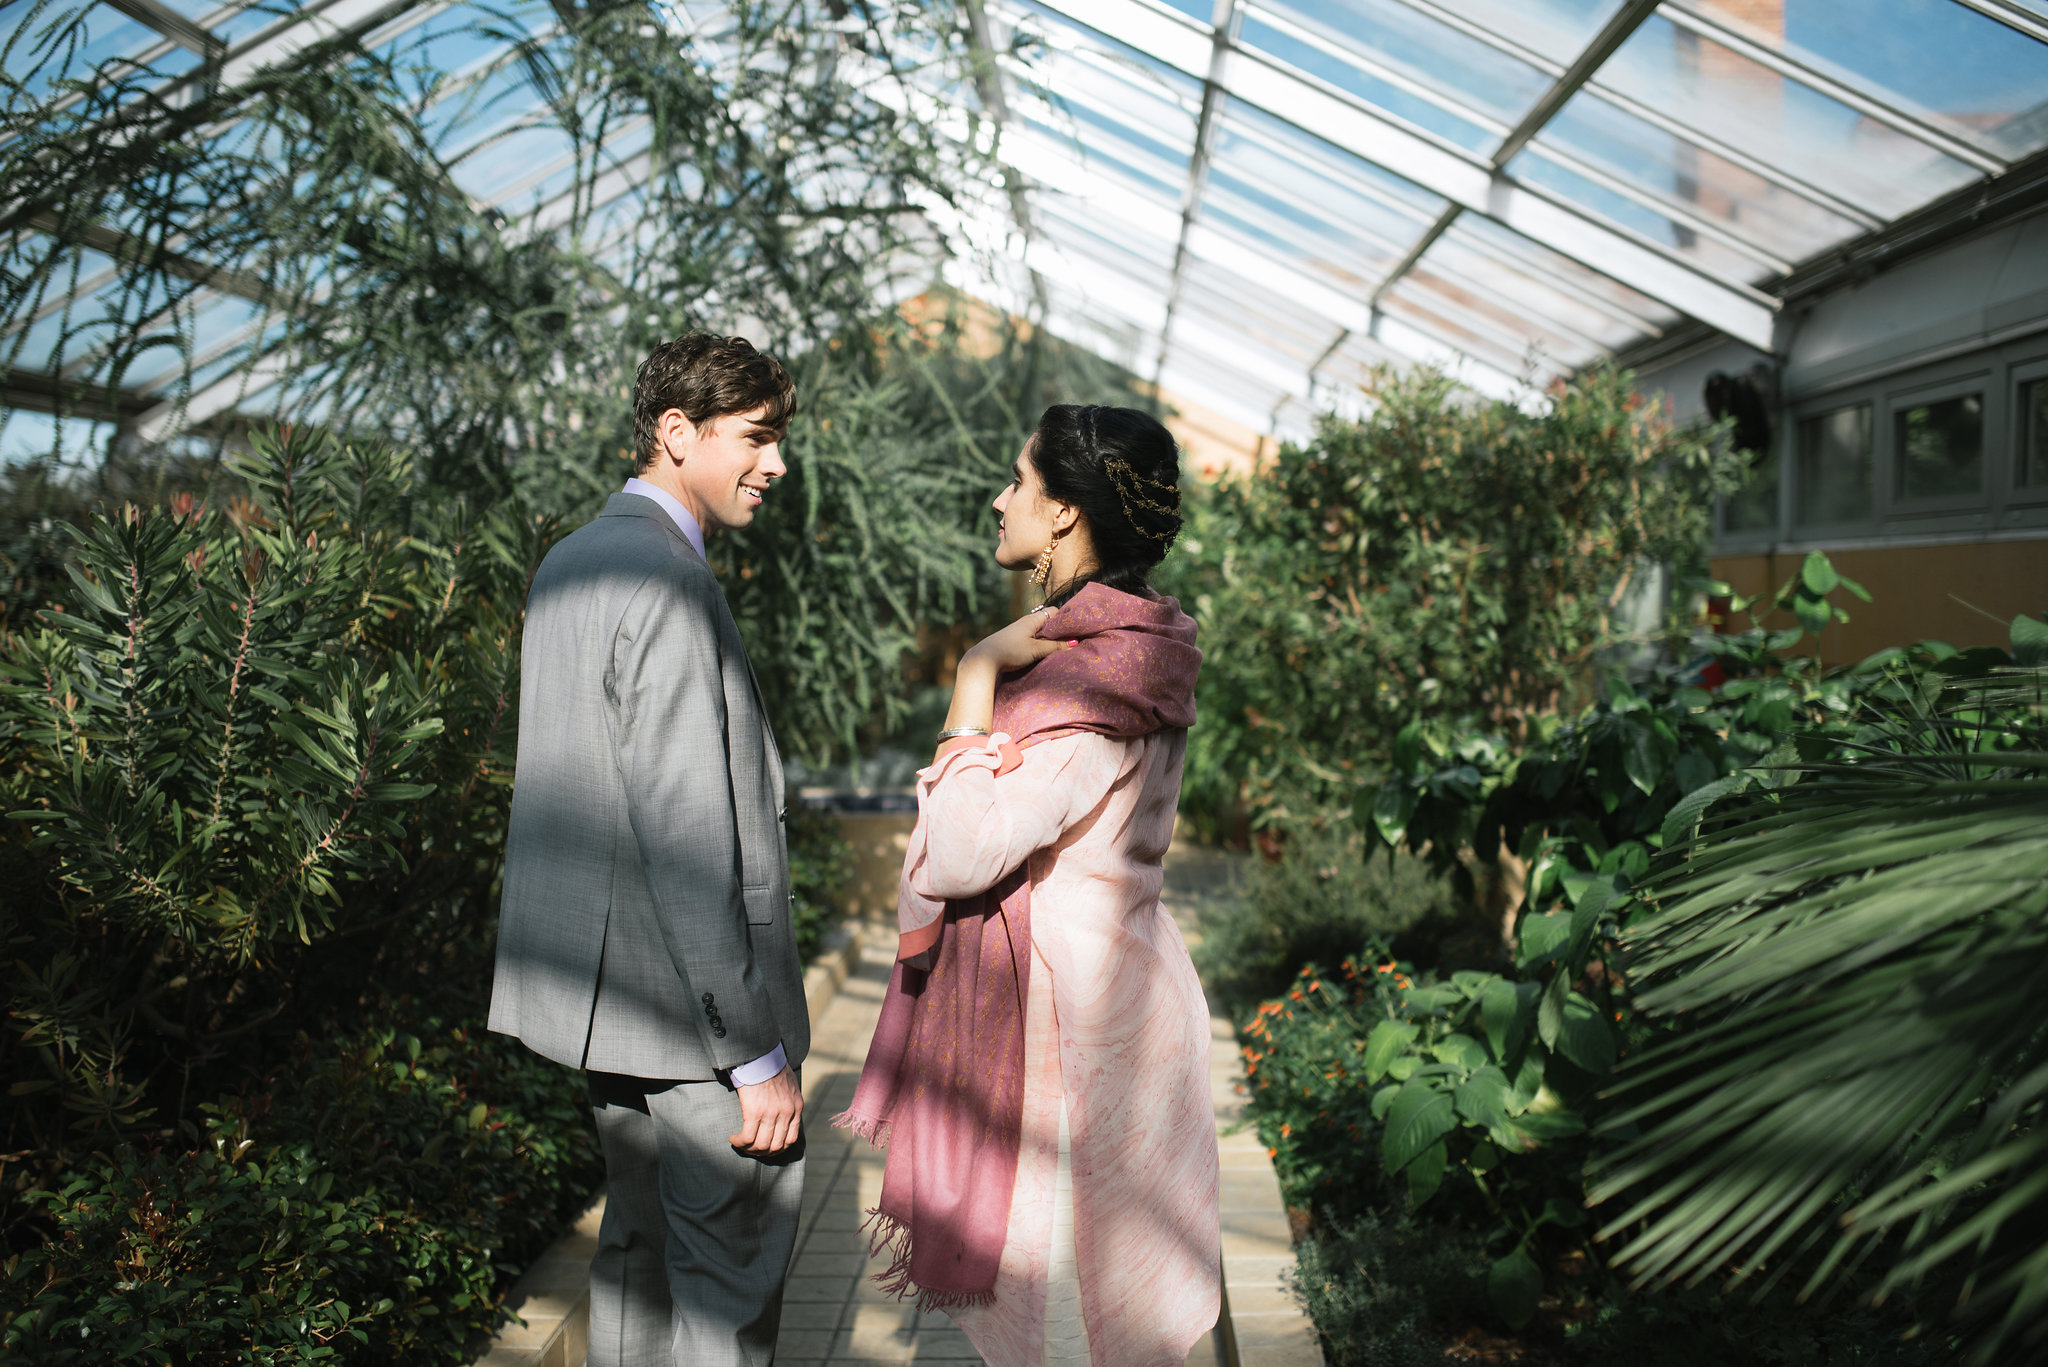 Elopement, Weekday Wedding, Towson, Rawlings Conservatory, Greenhouse, Baltimore Wedding Photographer, Indian American, Outdoor, Nature, Romantic, Garden, Bride and Groom